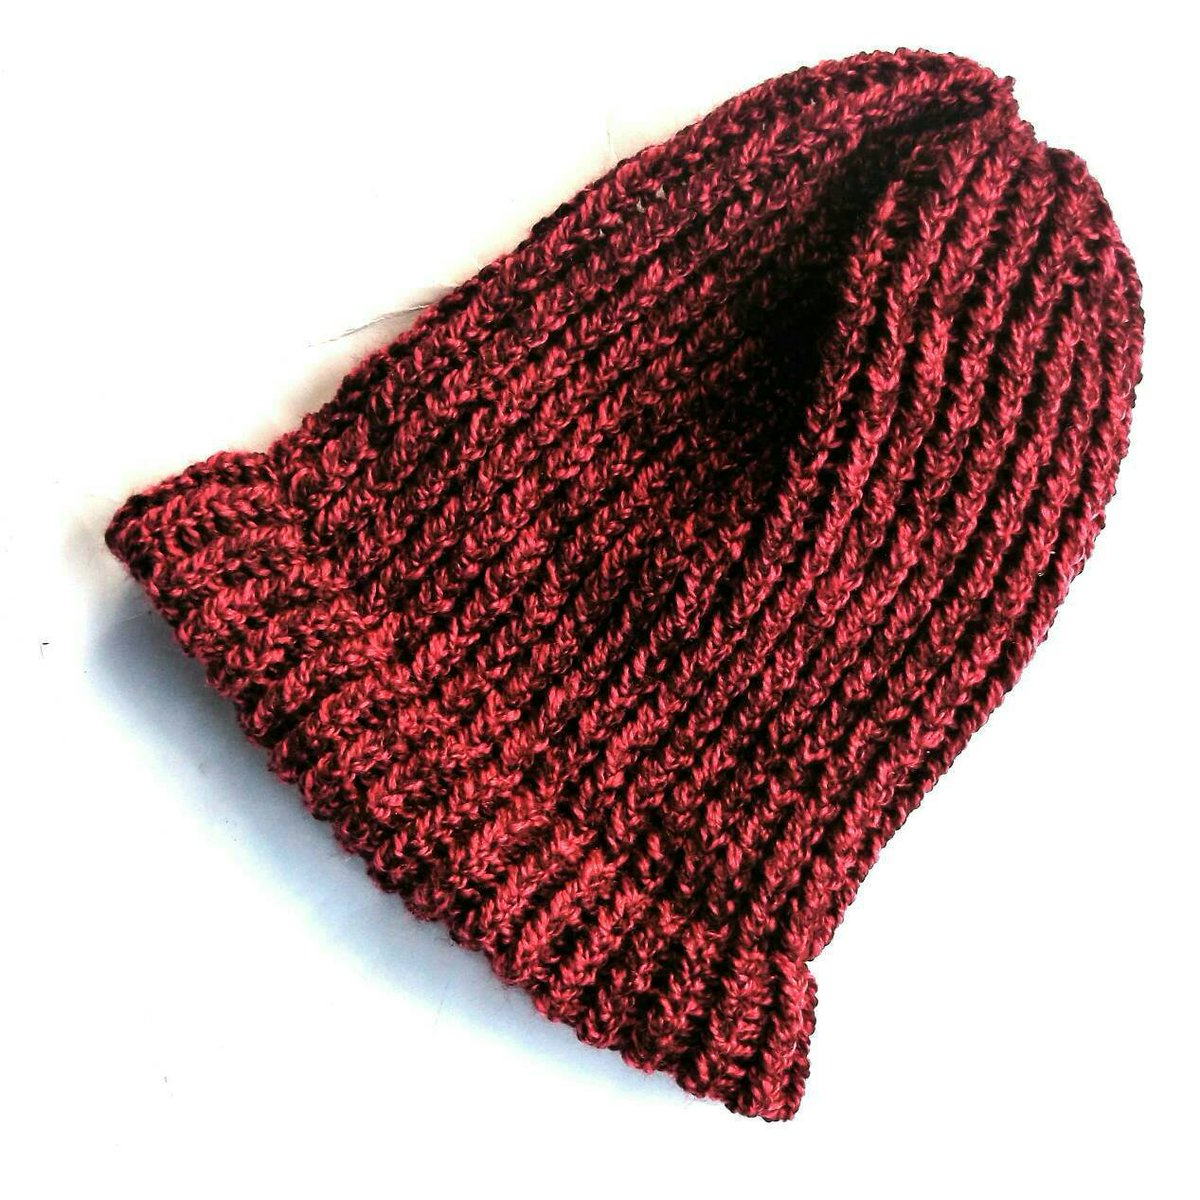 7a0d63d0 ... soft vegan beanie, fits adults and teens, dreadlock beanie hat, winter  slouch hat, knitted hat handmade https://etsy.me/2R5s7wJ #Shopping  #Winterbeanies ...